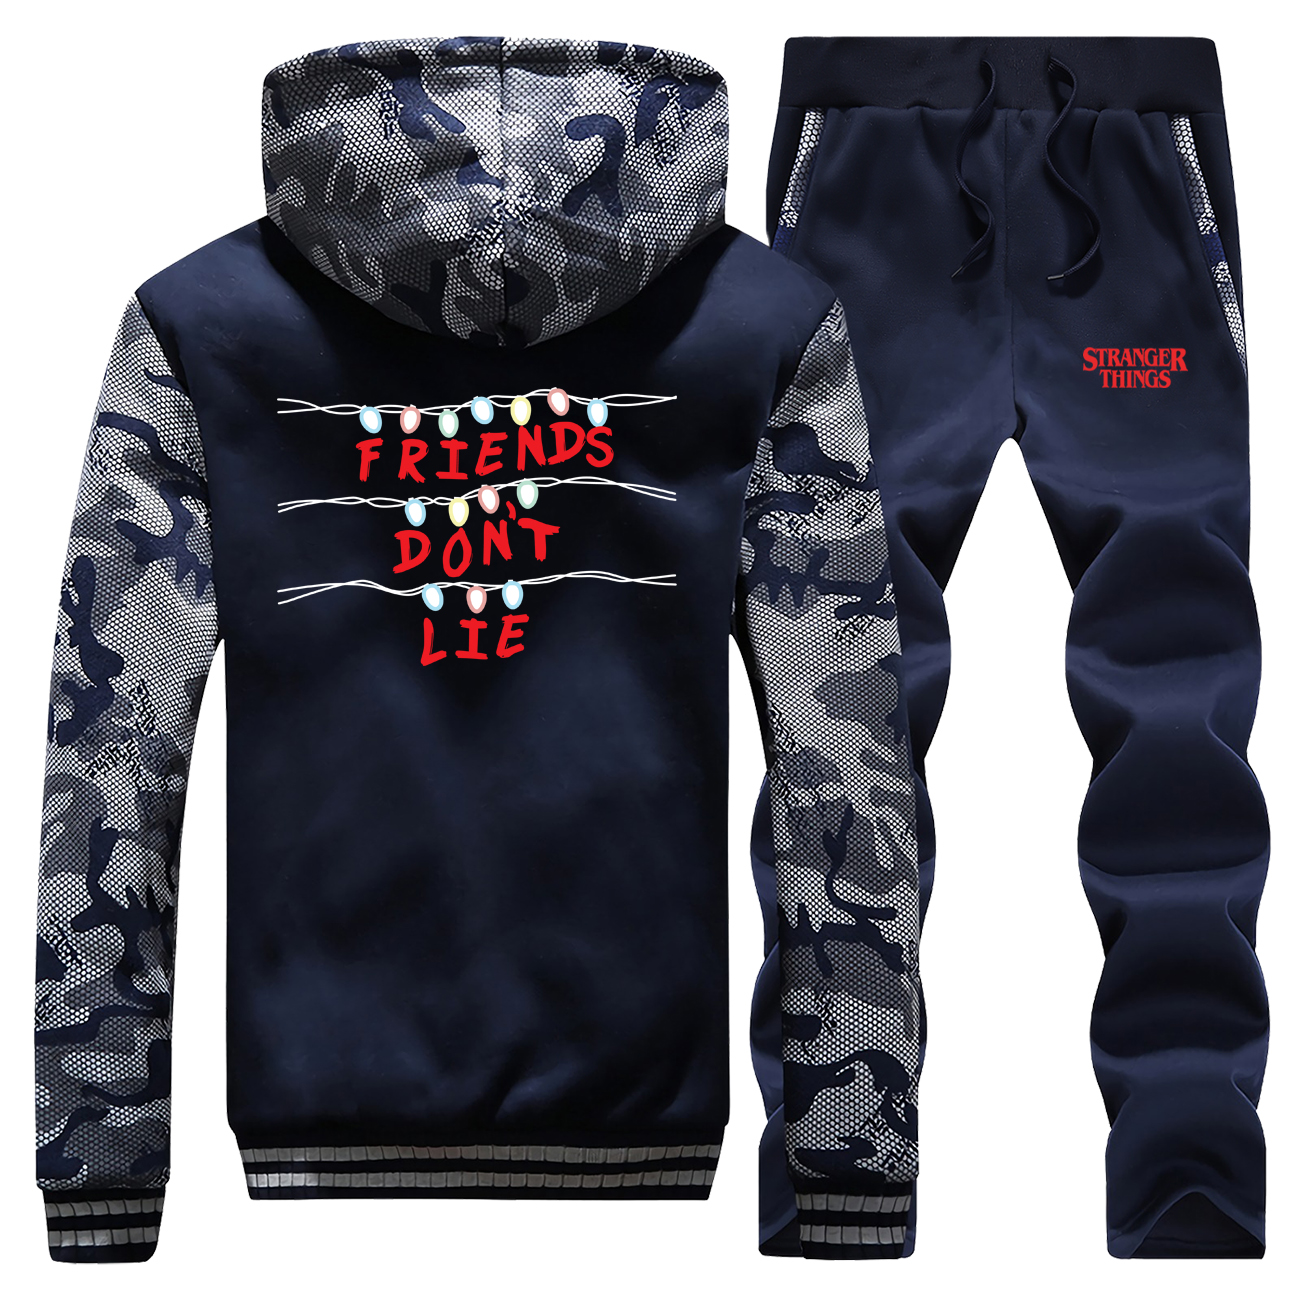 Winter Men Thick Warm 2Pcs Sports Suit Tracksuit Sweatpants Zipper Cardigan Fleece Hoodies + Pants Casual Homme Popular New Sets